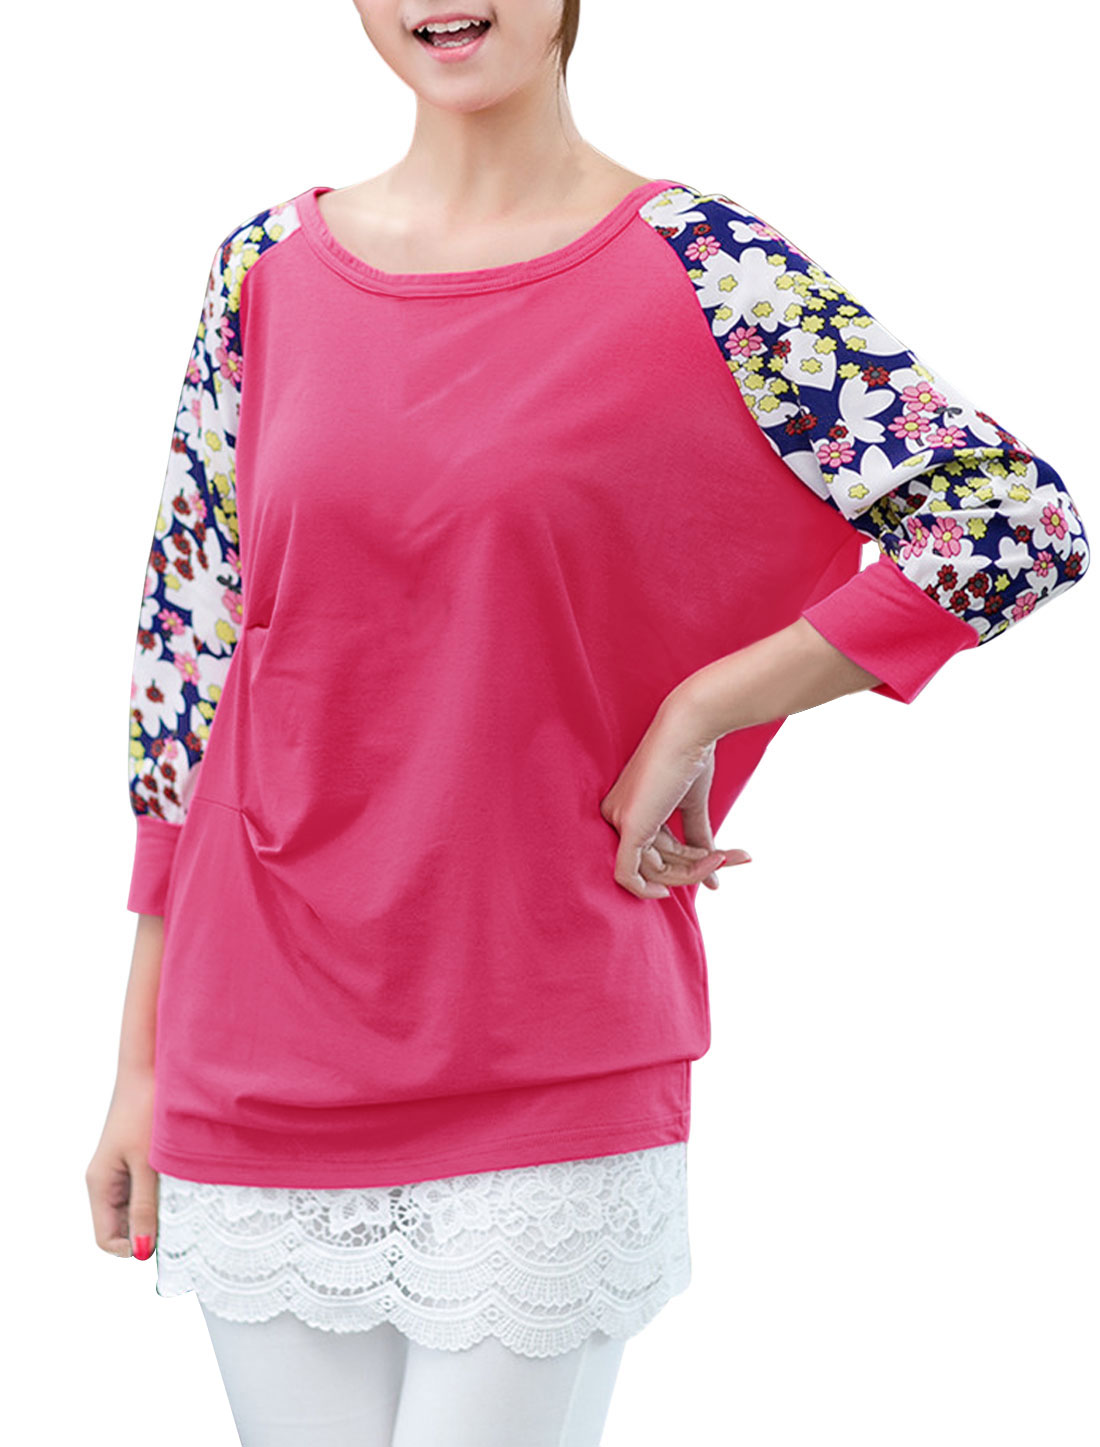 Lady Chiffon-Patch 3/4 Raglan Sleeve Flower Pattern Tunic Top Fuchsia M